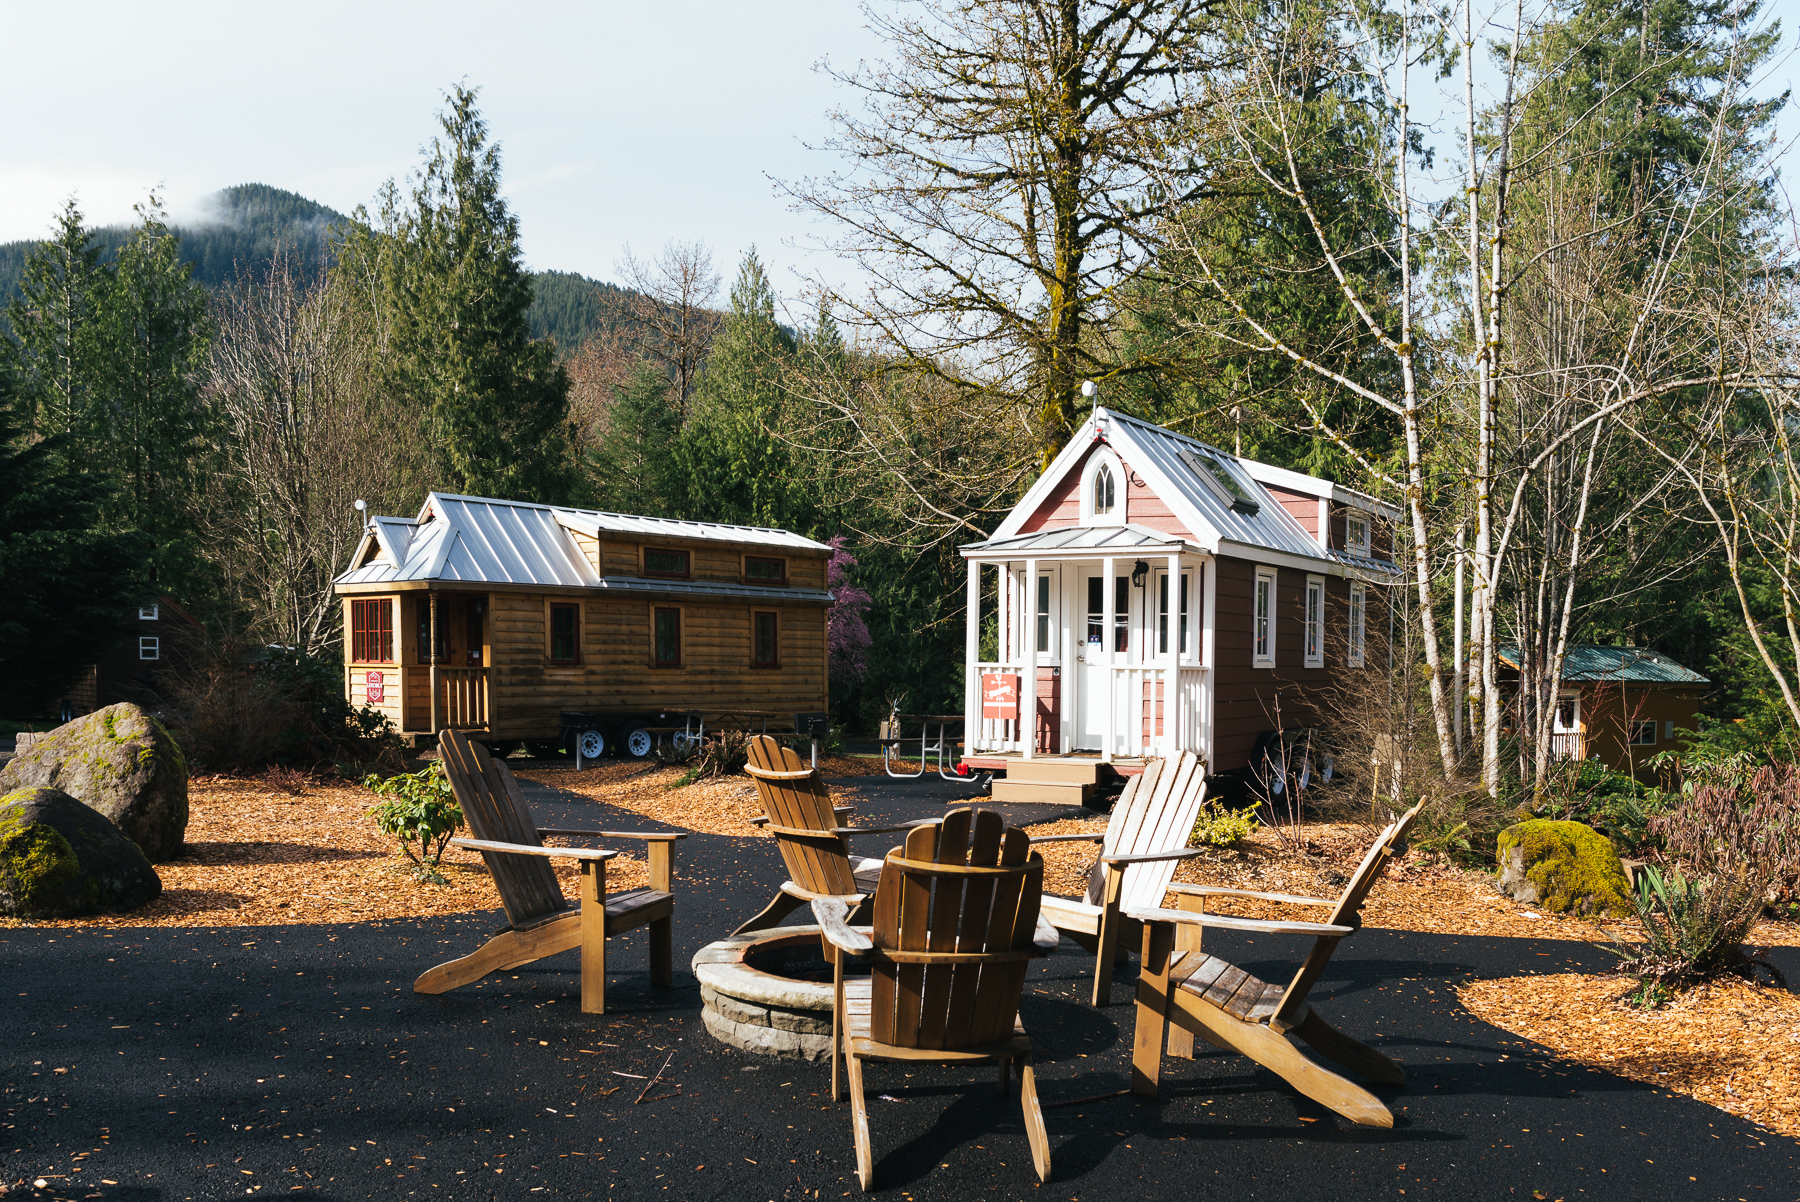 two tiny houses and firepit outdoors